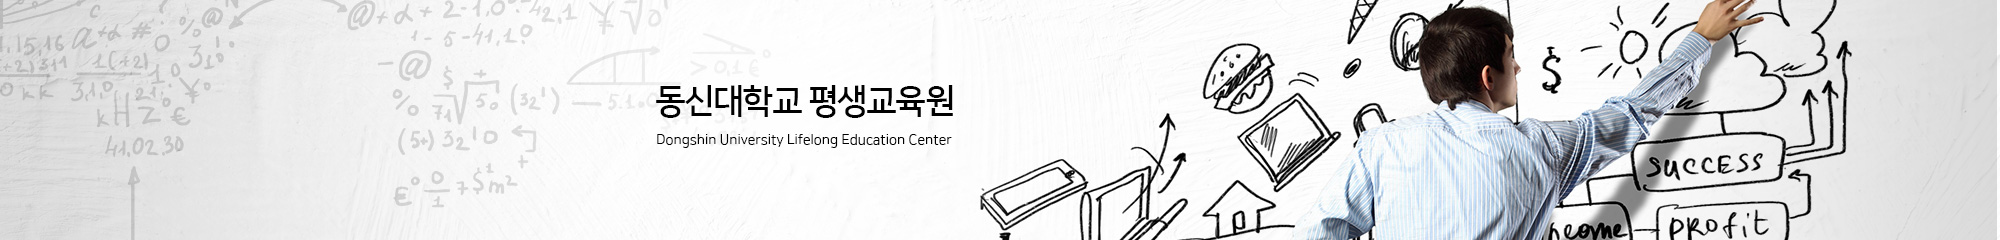 동신대학교 평생교육원 Dongshin University Lifelong Education Center